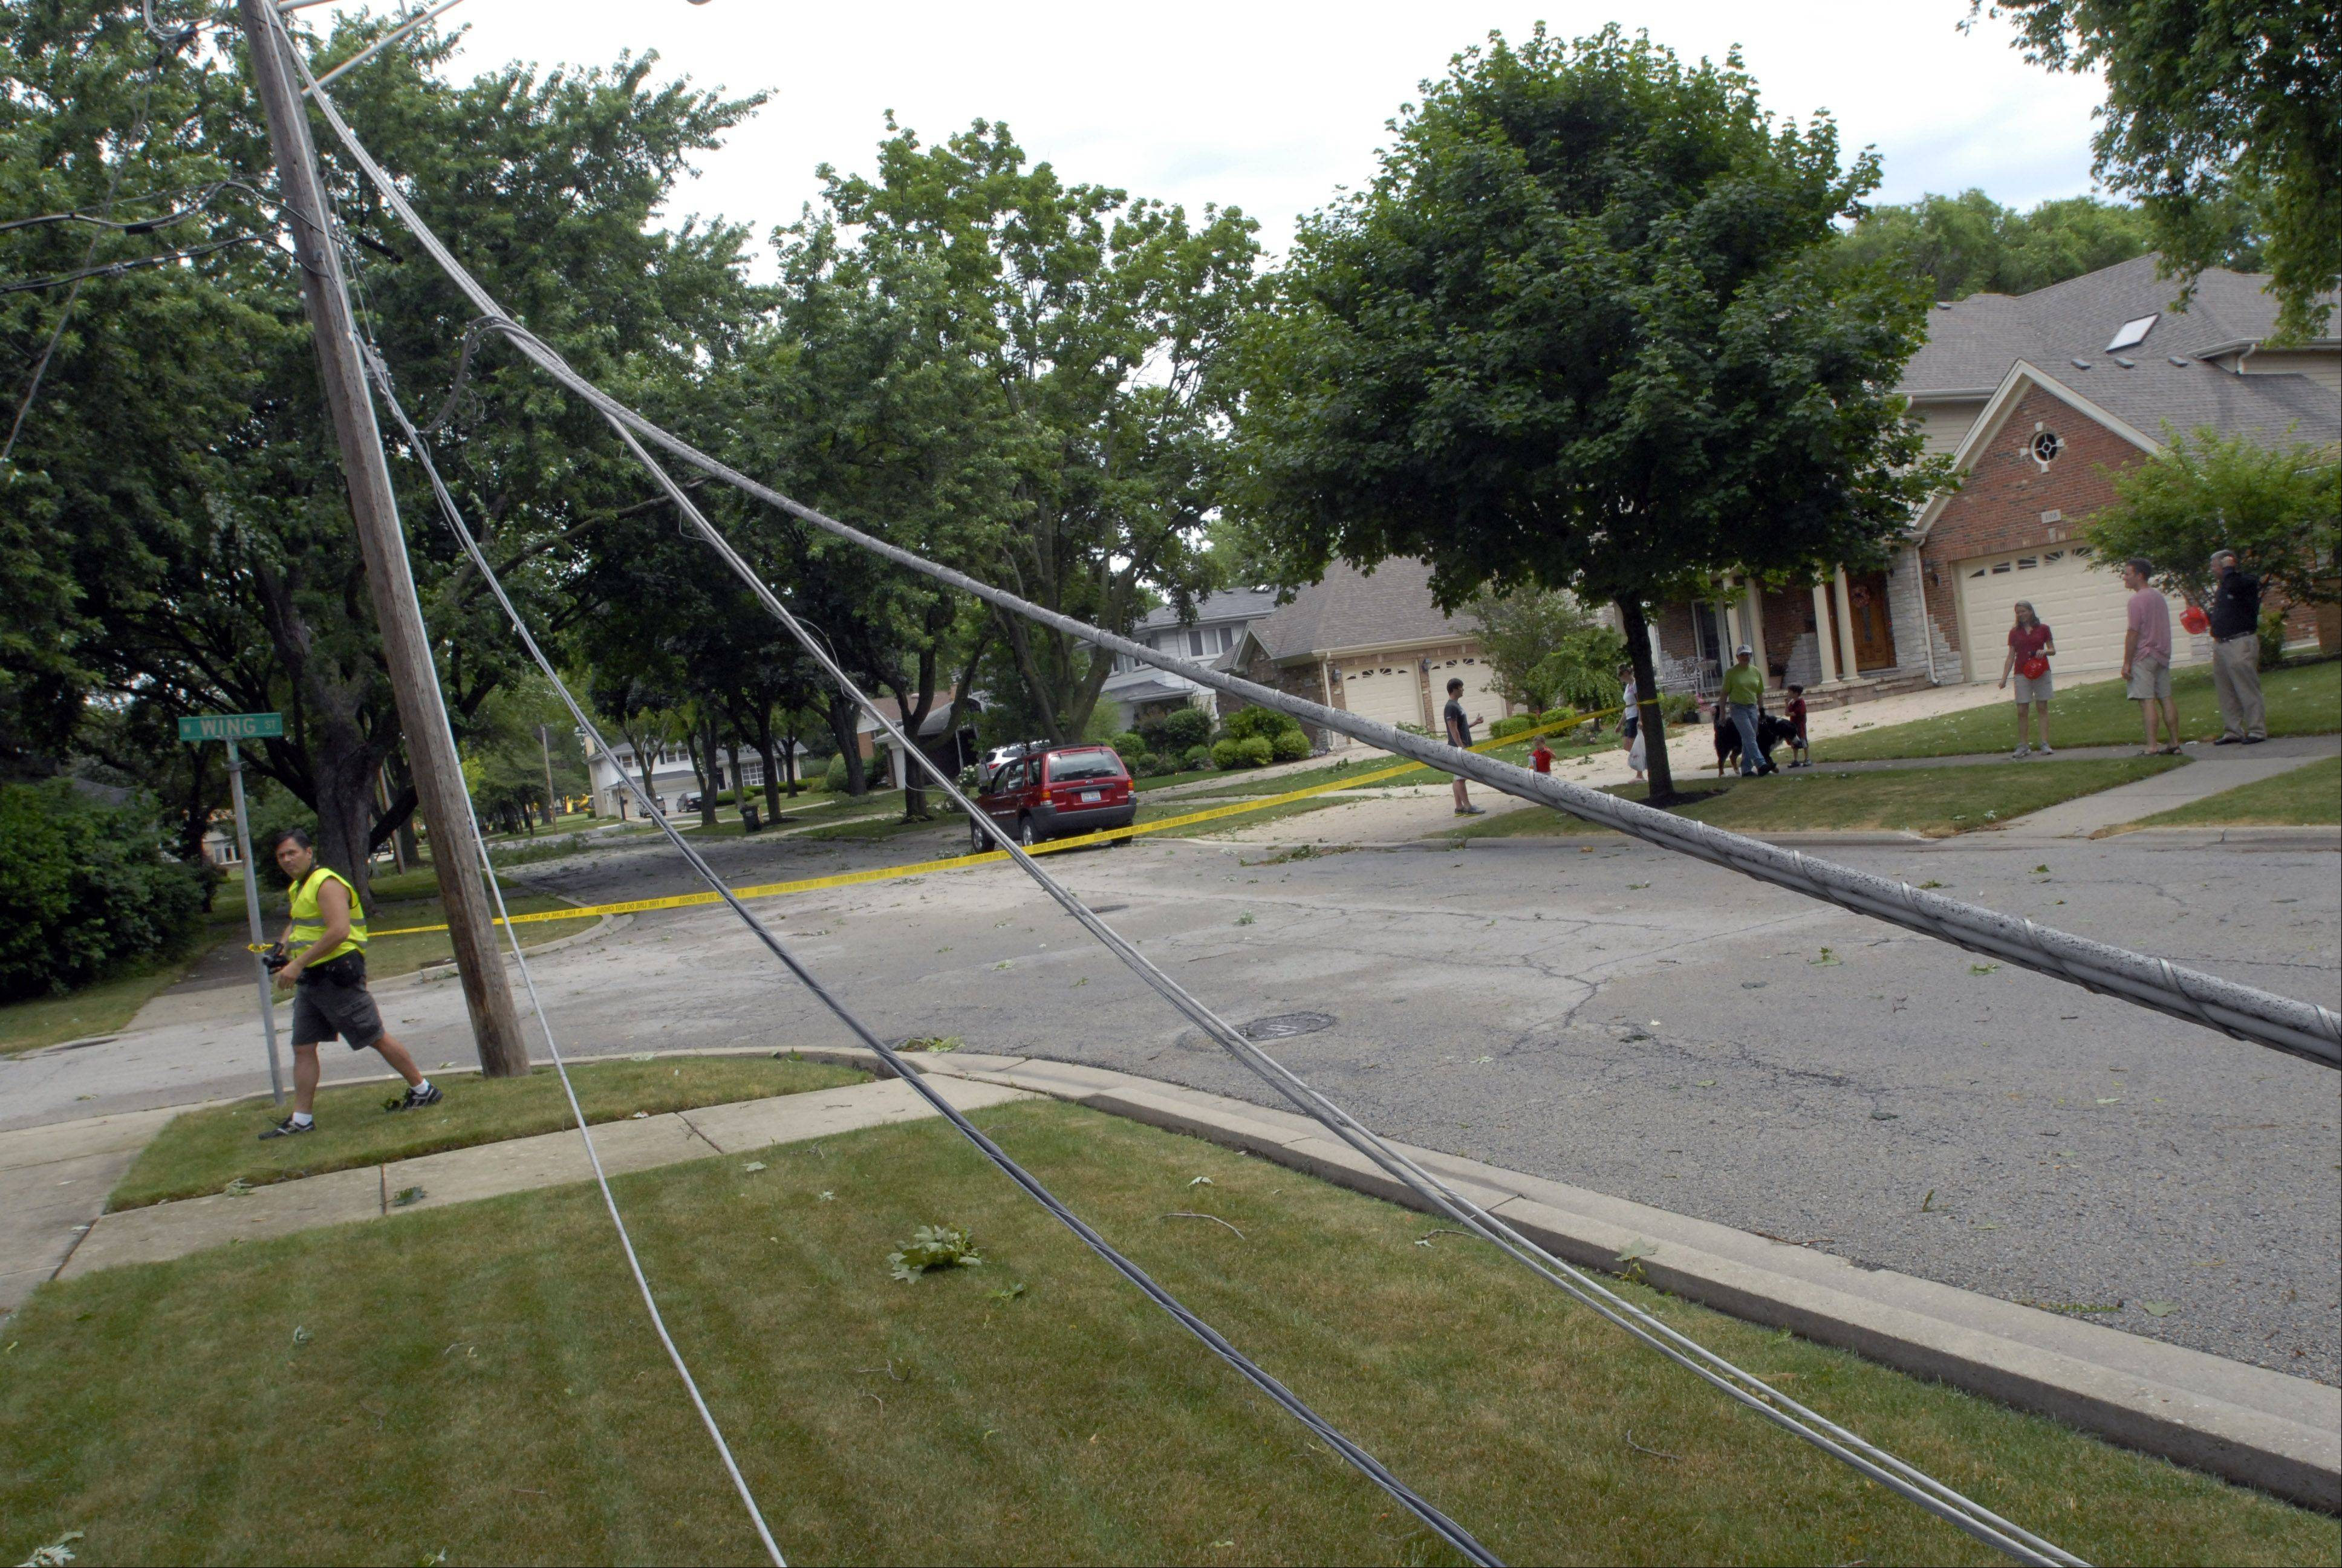 Wires are down on Kennicott Avenue at Wing Street after a thunderstorm capable of producing 70 mile per hour winds hit the area Monday morning in Arlington Heights.